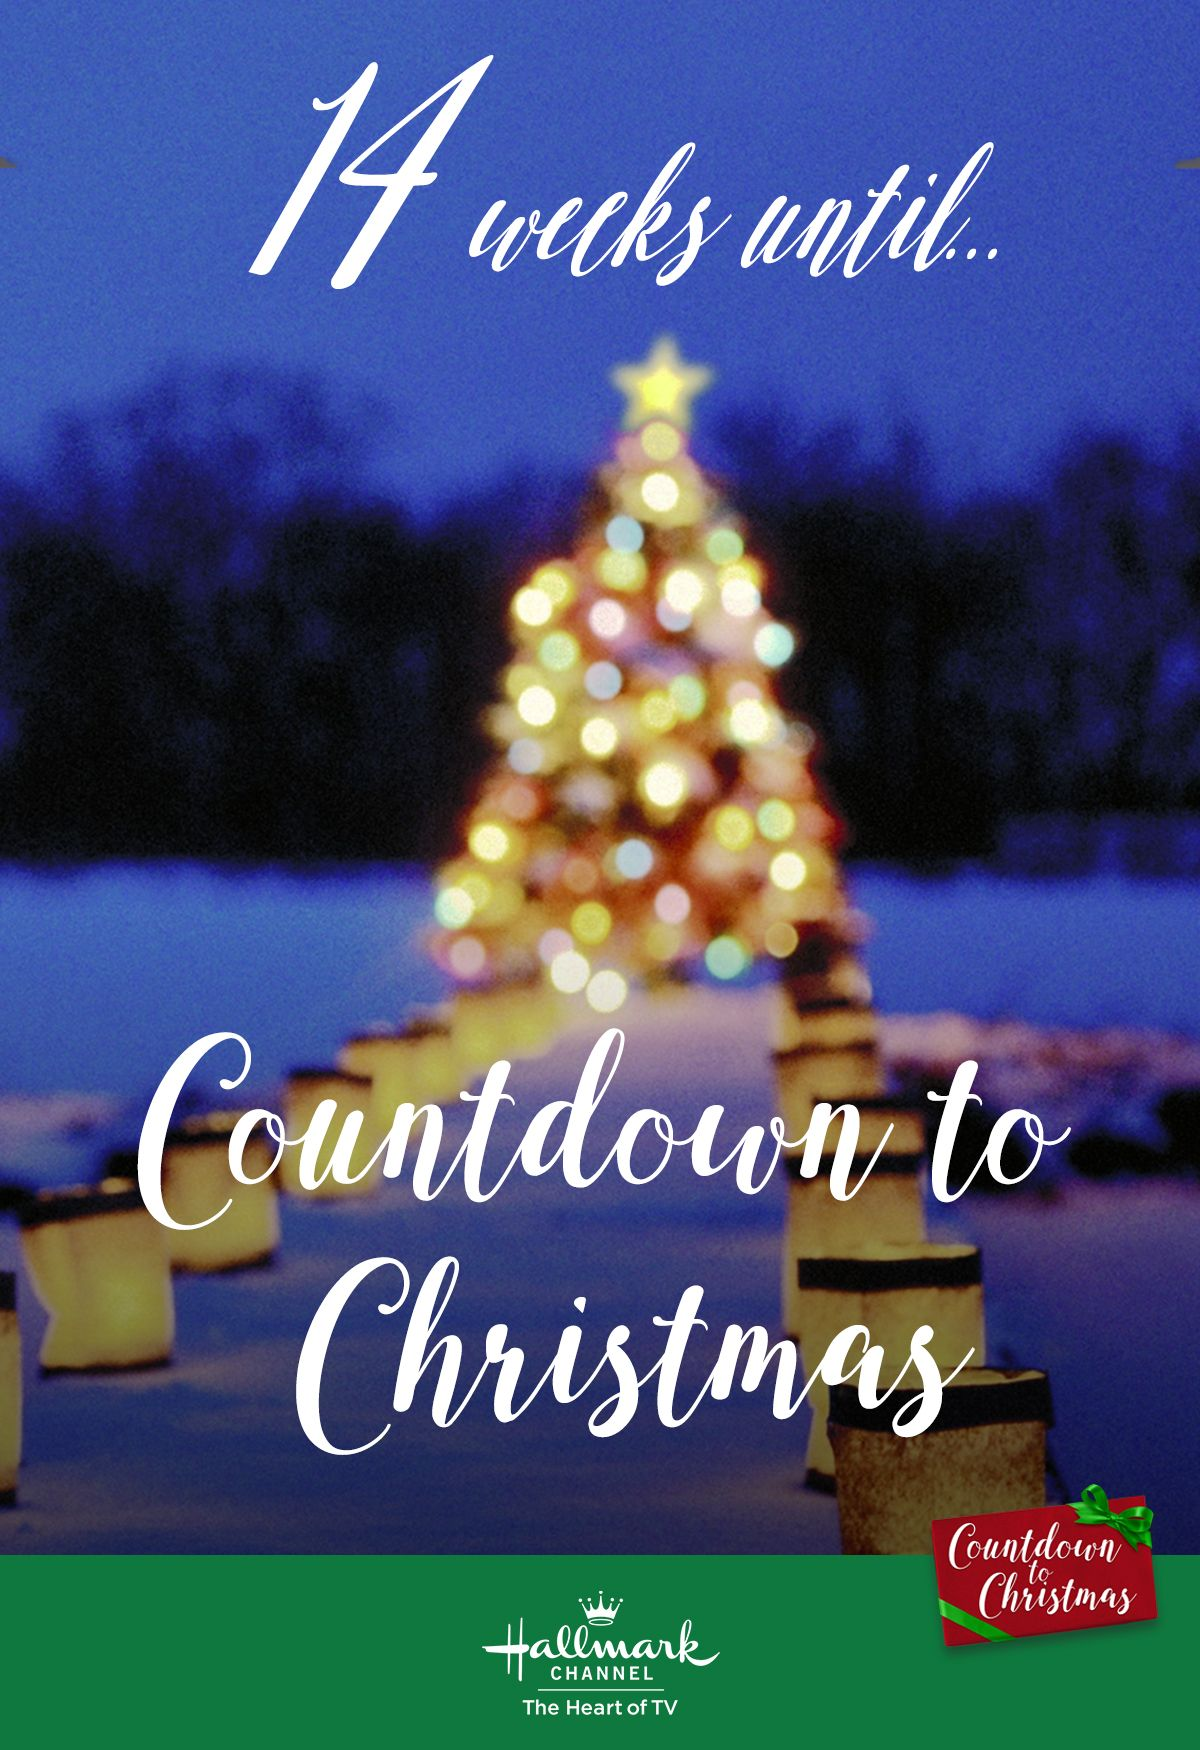 Christmas Countdown 2019.14 Weeks Until The Start Of Countdown To Christmas Our